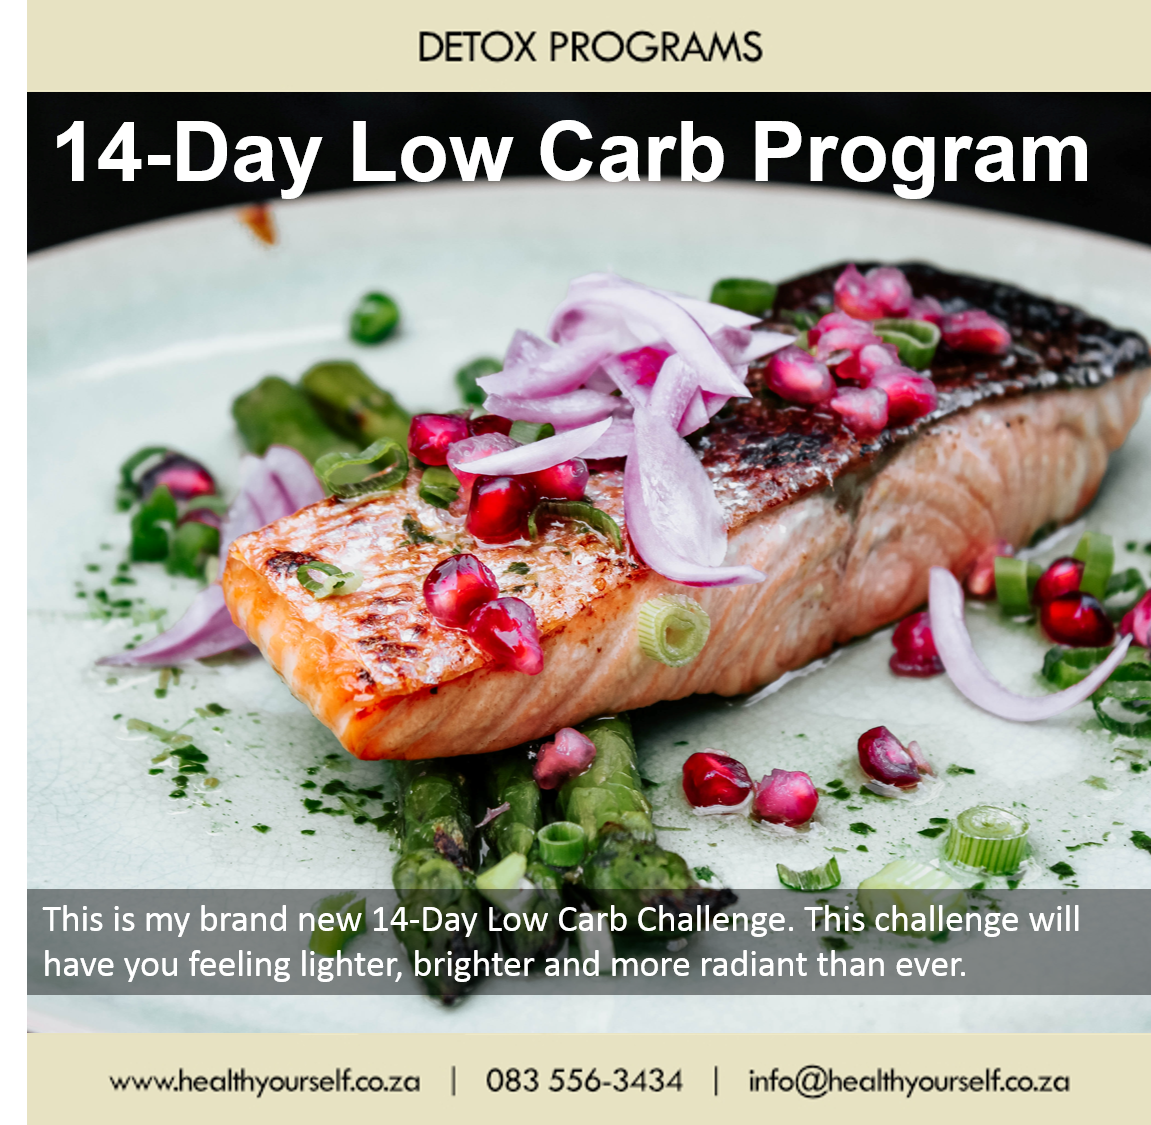 14-Day Low Carb Program